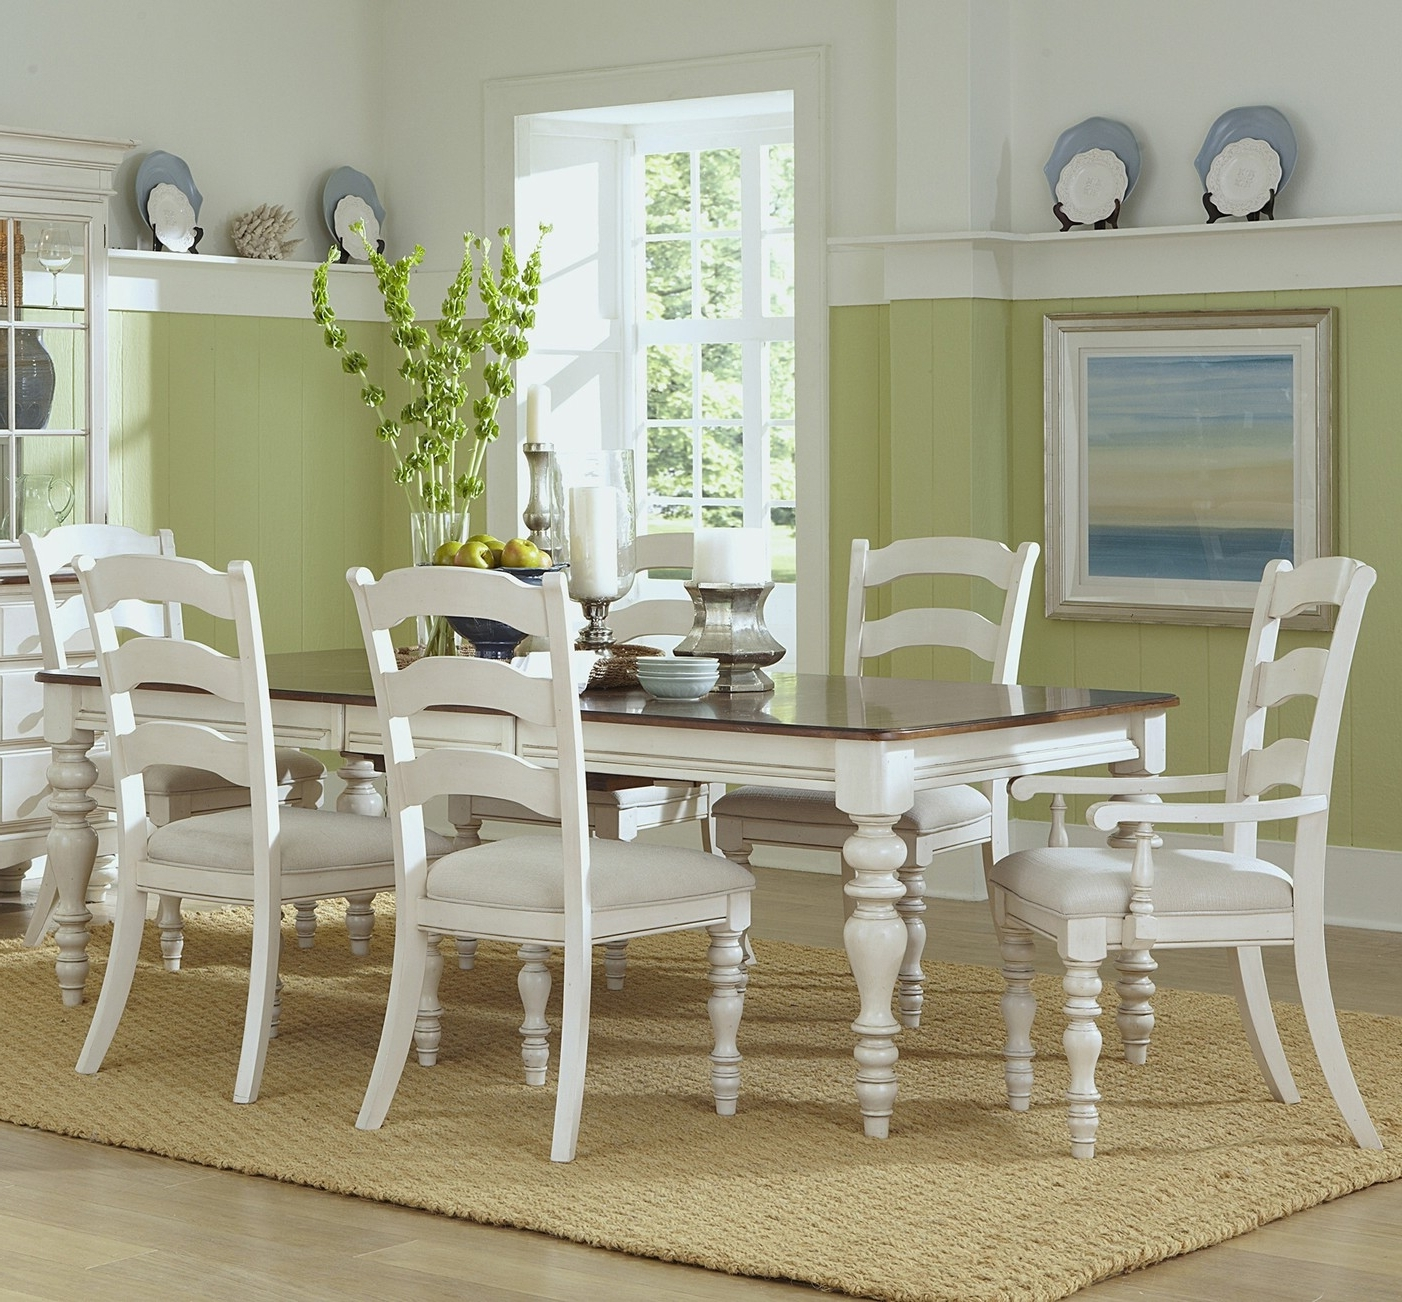 Widely Used Pine Wood White Dining Chairs With Regard To Pine Island Wood Dining Table In Old White (View 5 of 20)